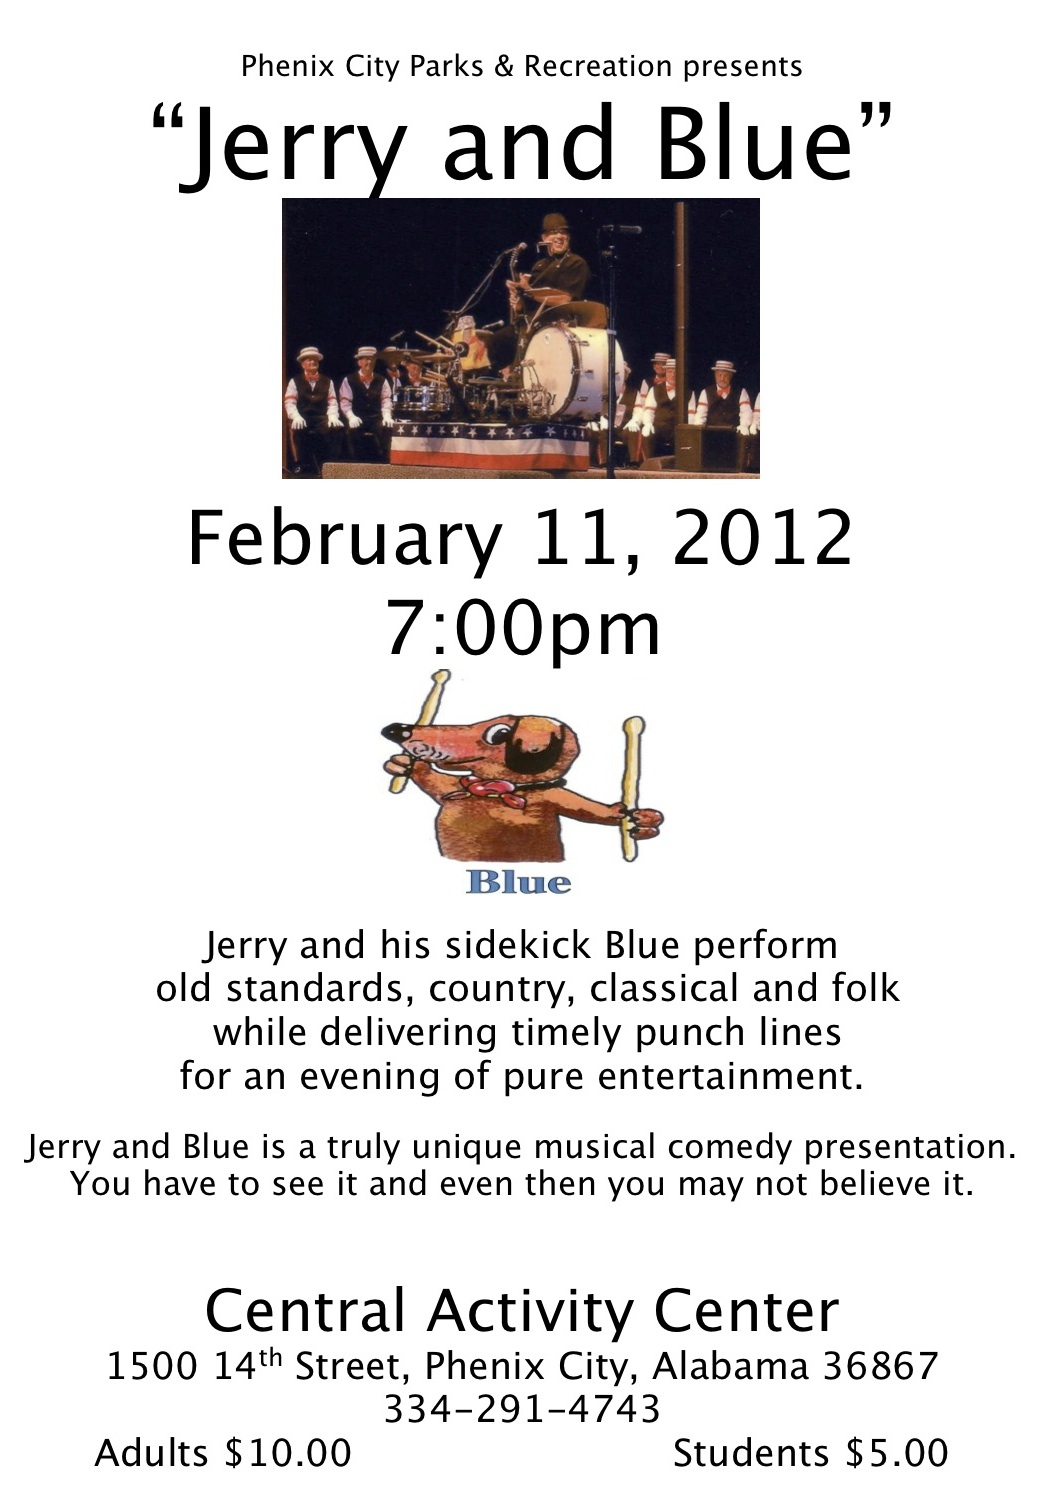 Phenix City Parks & Rec presents Jerry and Blue